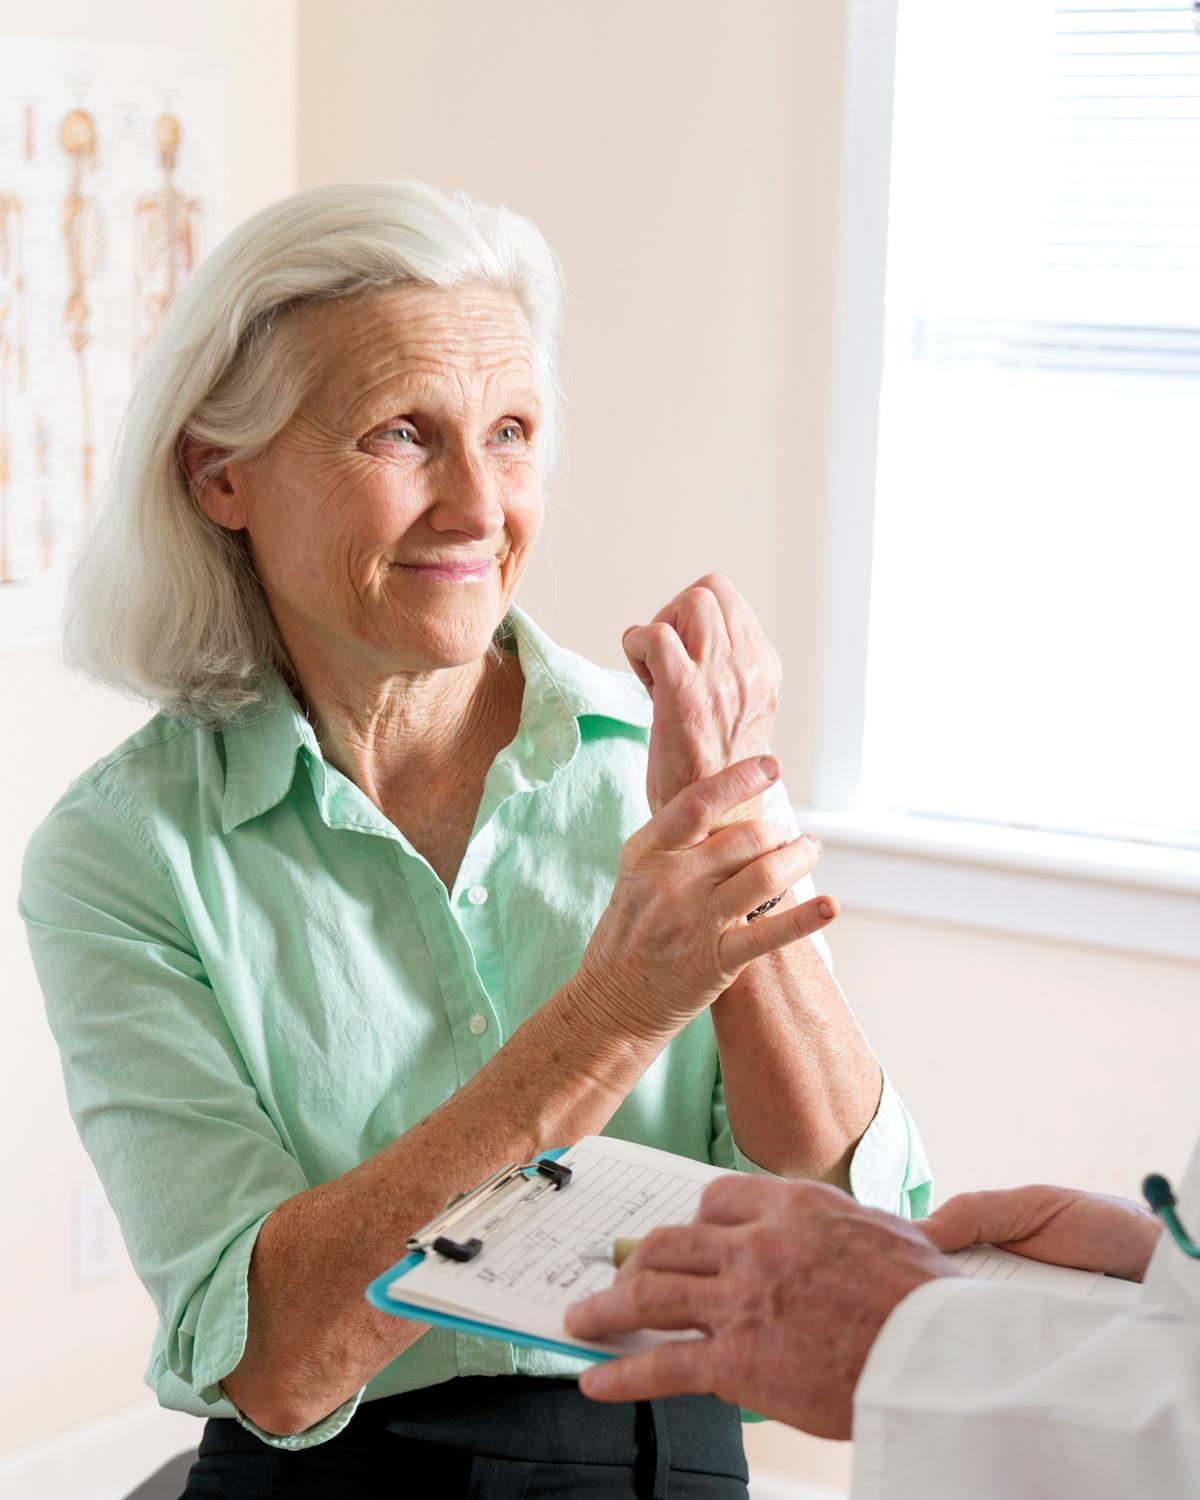 Woman Holding Wrist - Carpal Tunnel Syndrome